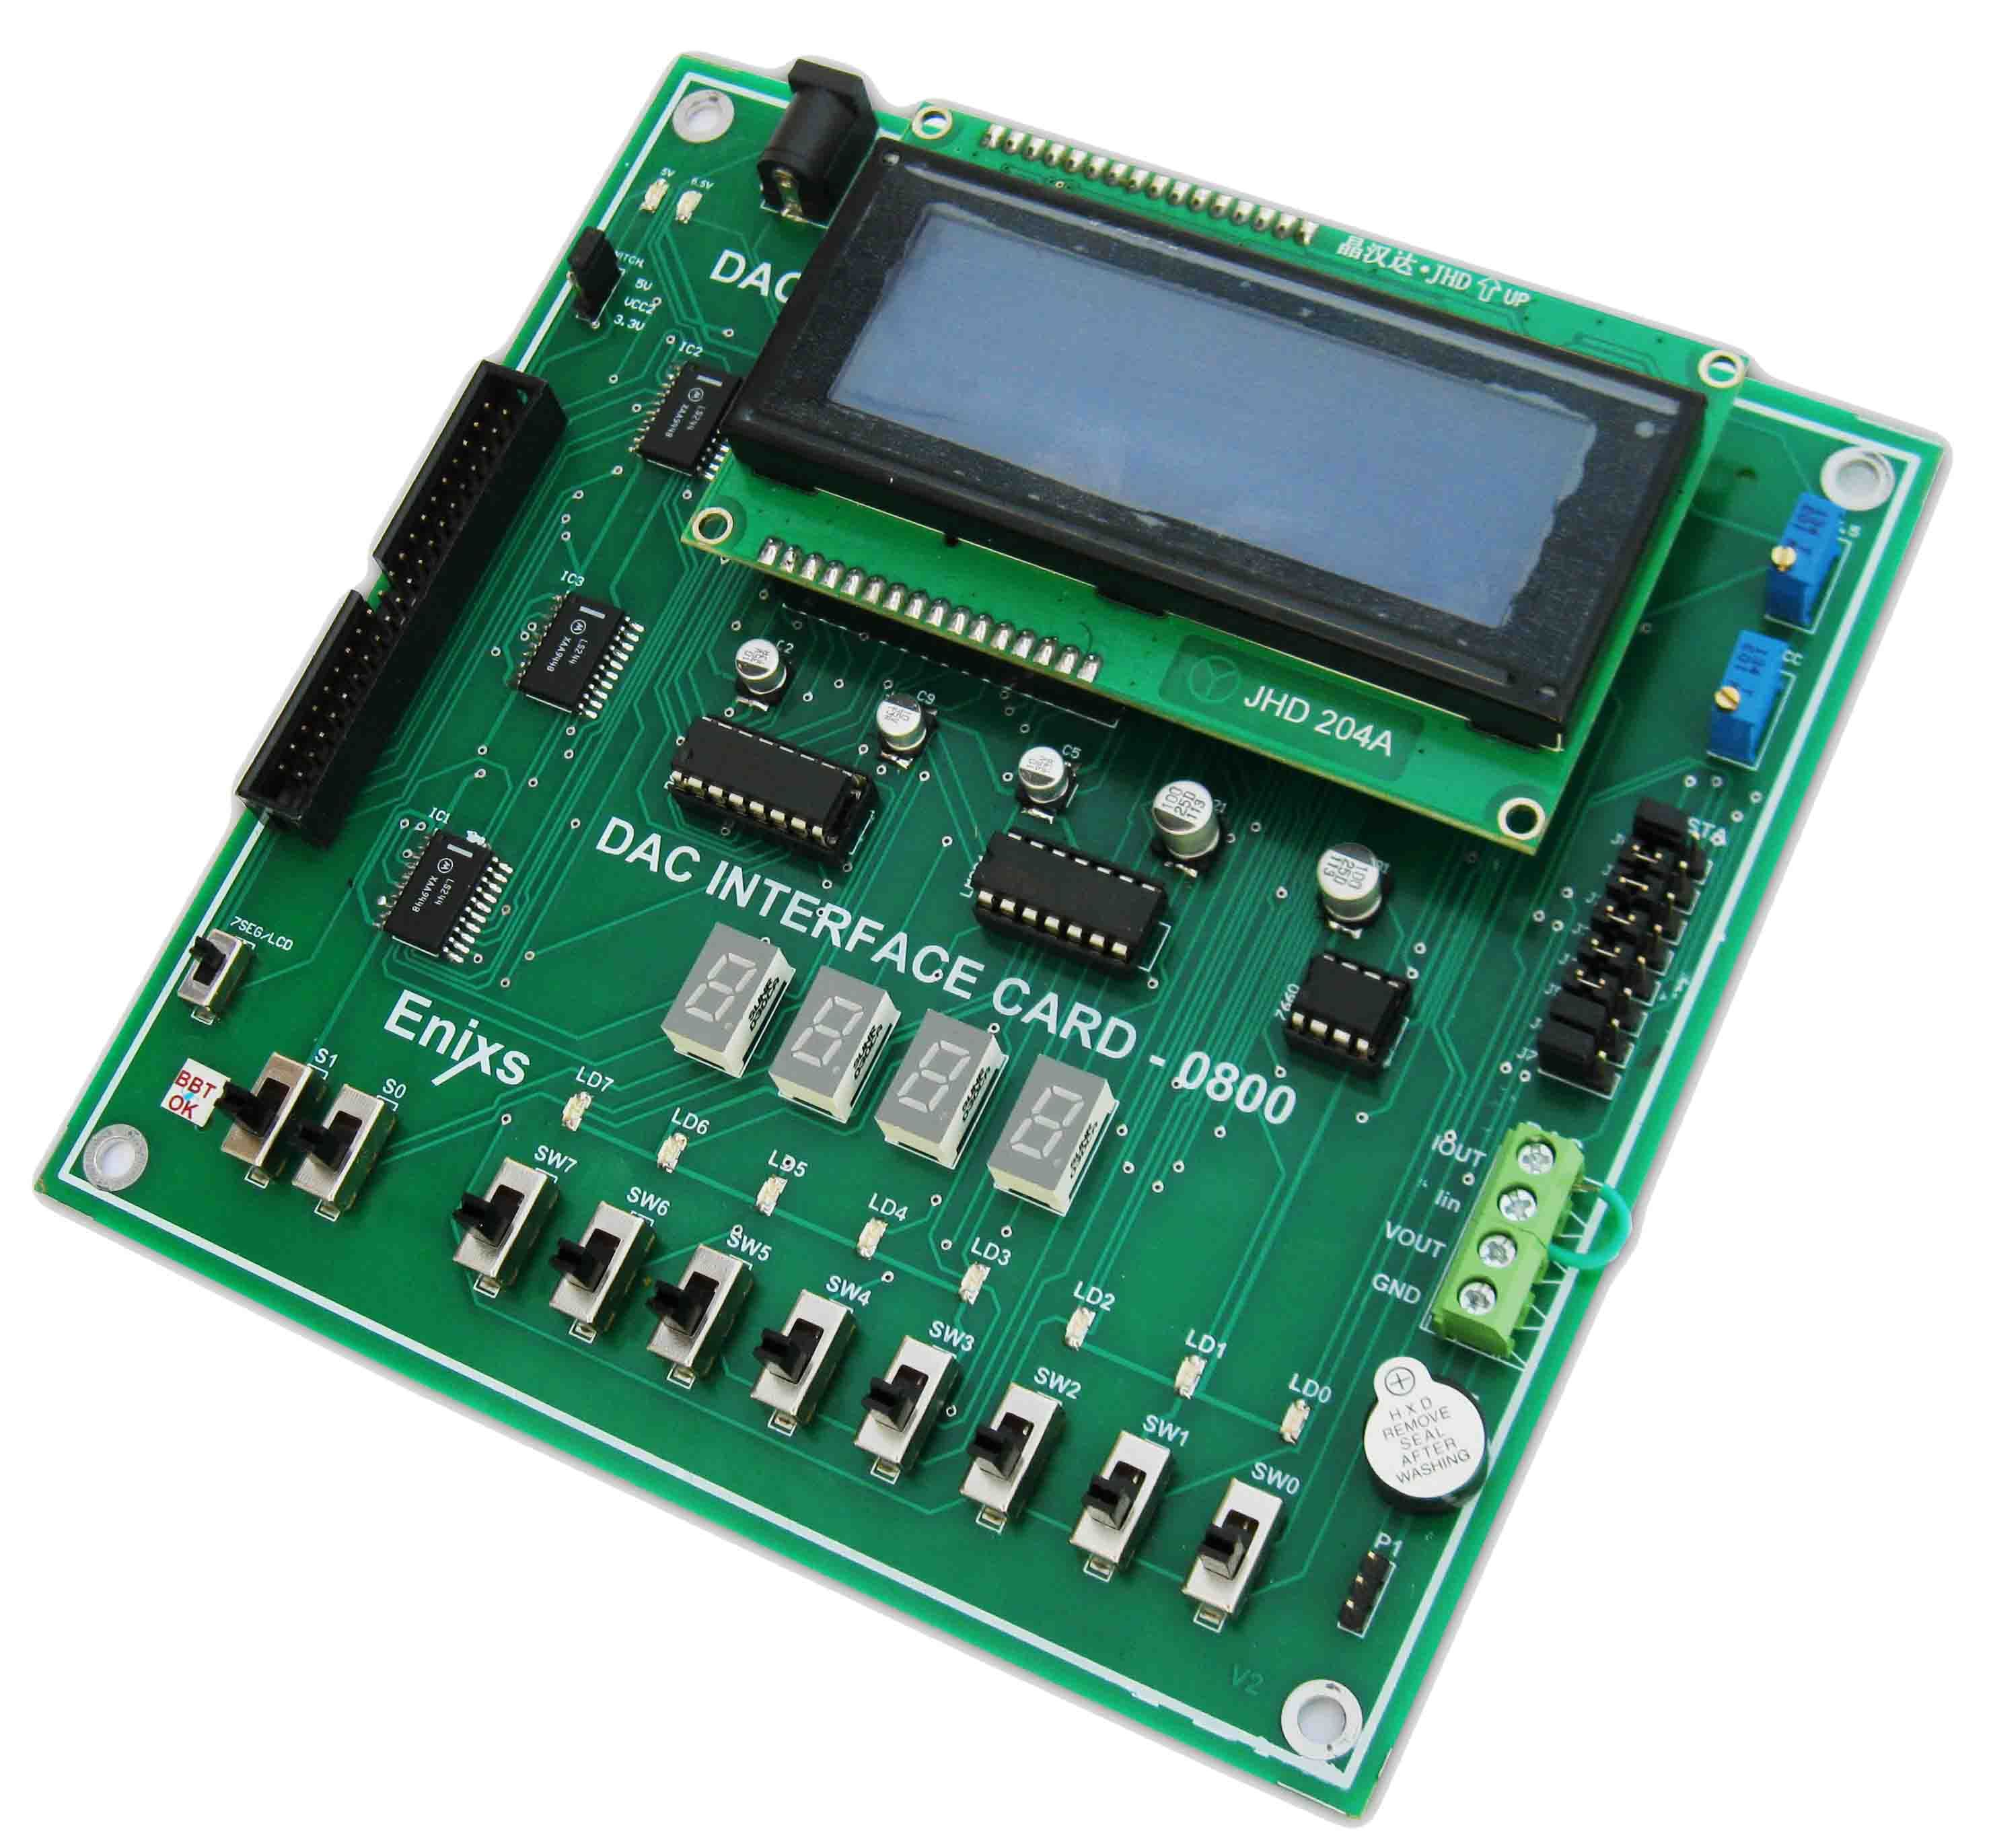 dac0800 interface card the dac interface card is designed to demonstrate the digital to analog conversion using dac 0800 chip  [ 2956 x 2746 Pixel ]